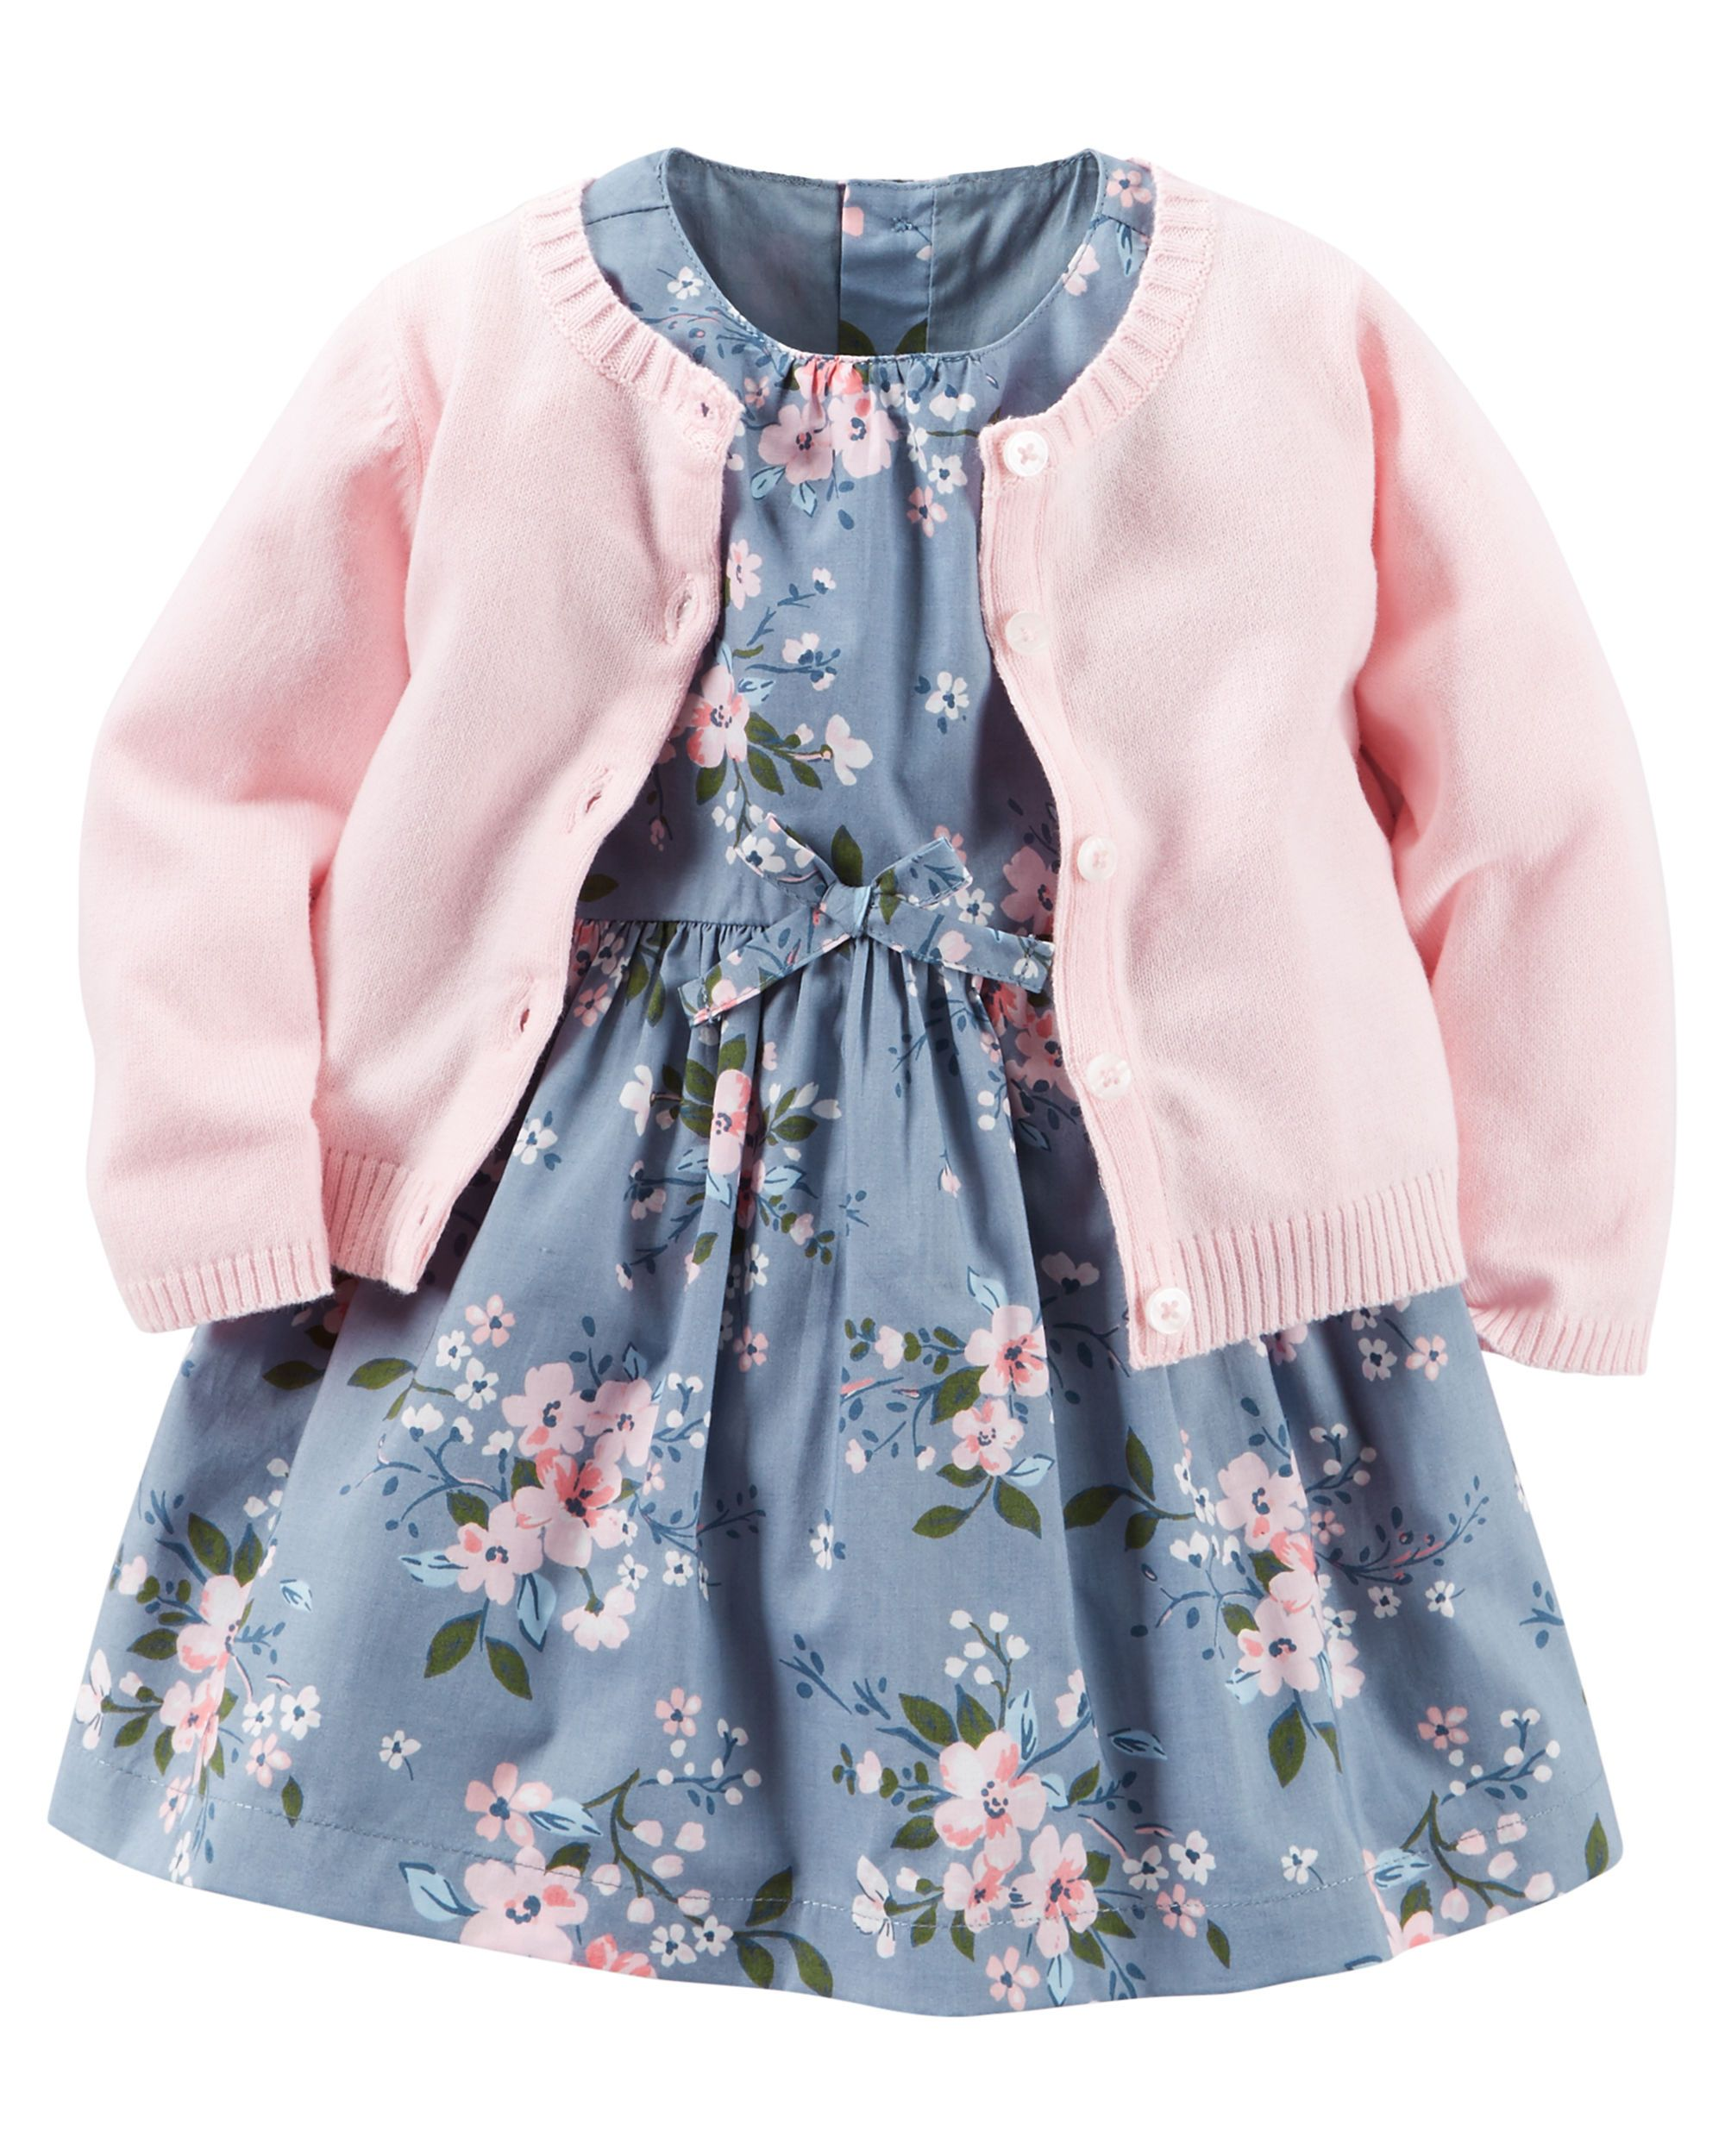 da00982b3c6 2-Piece Dress   Cardigan Set